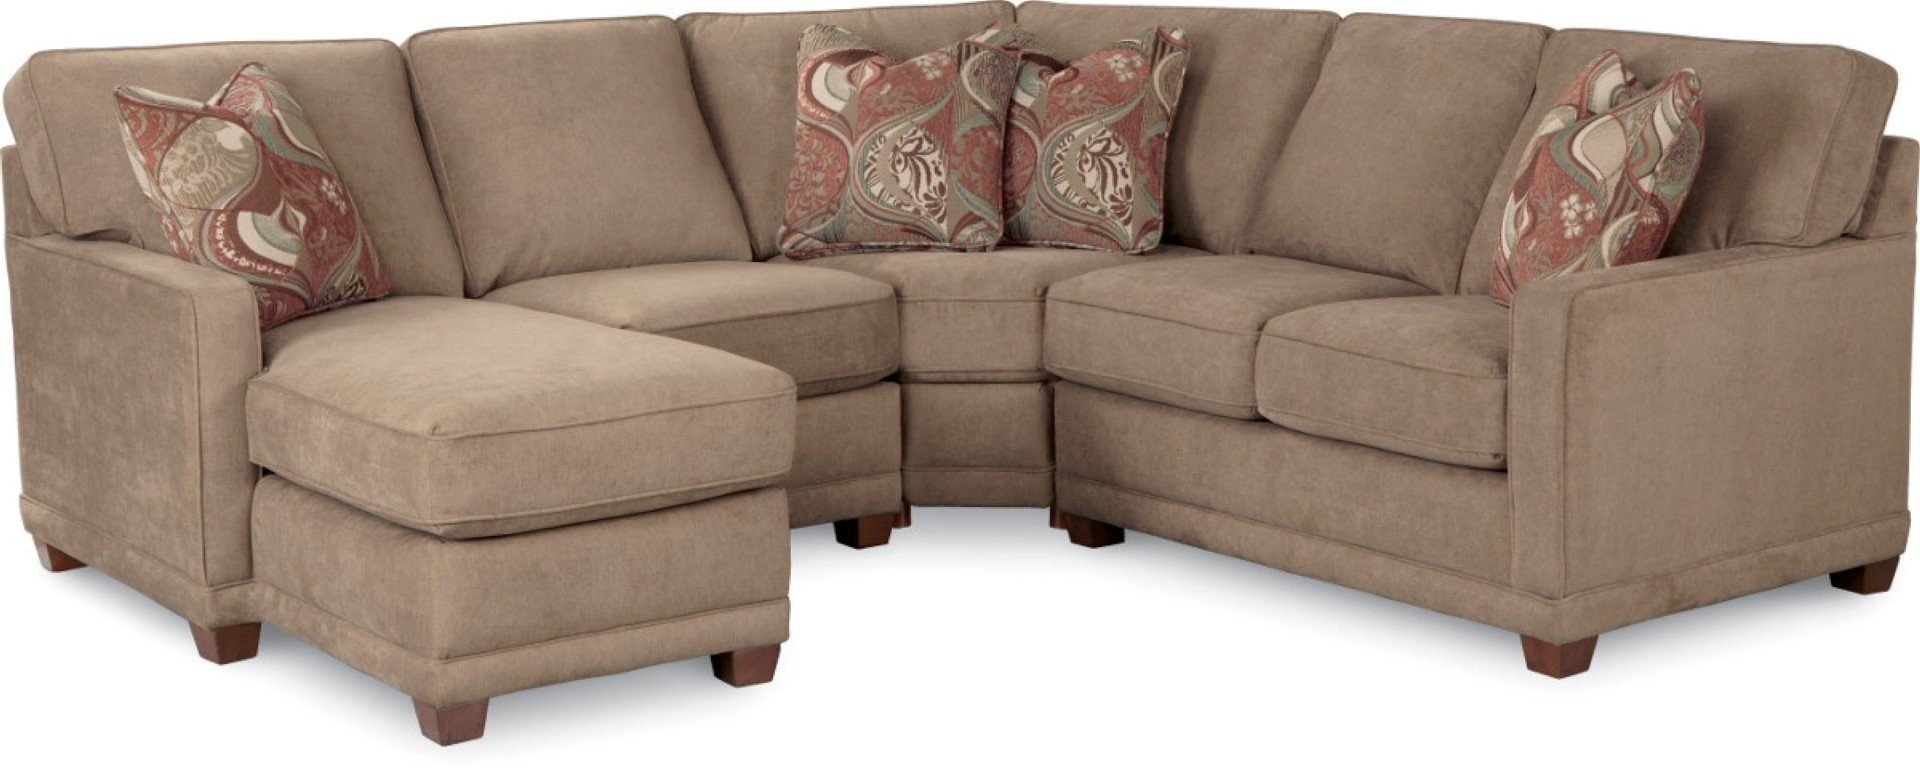 Kennedy Sectional Sofa – Town & Country Furniture Intended For Favorite Dayton Ohio Sectional Sofas (Gallery 13 of 15)